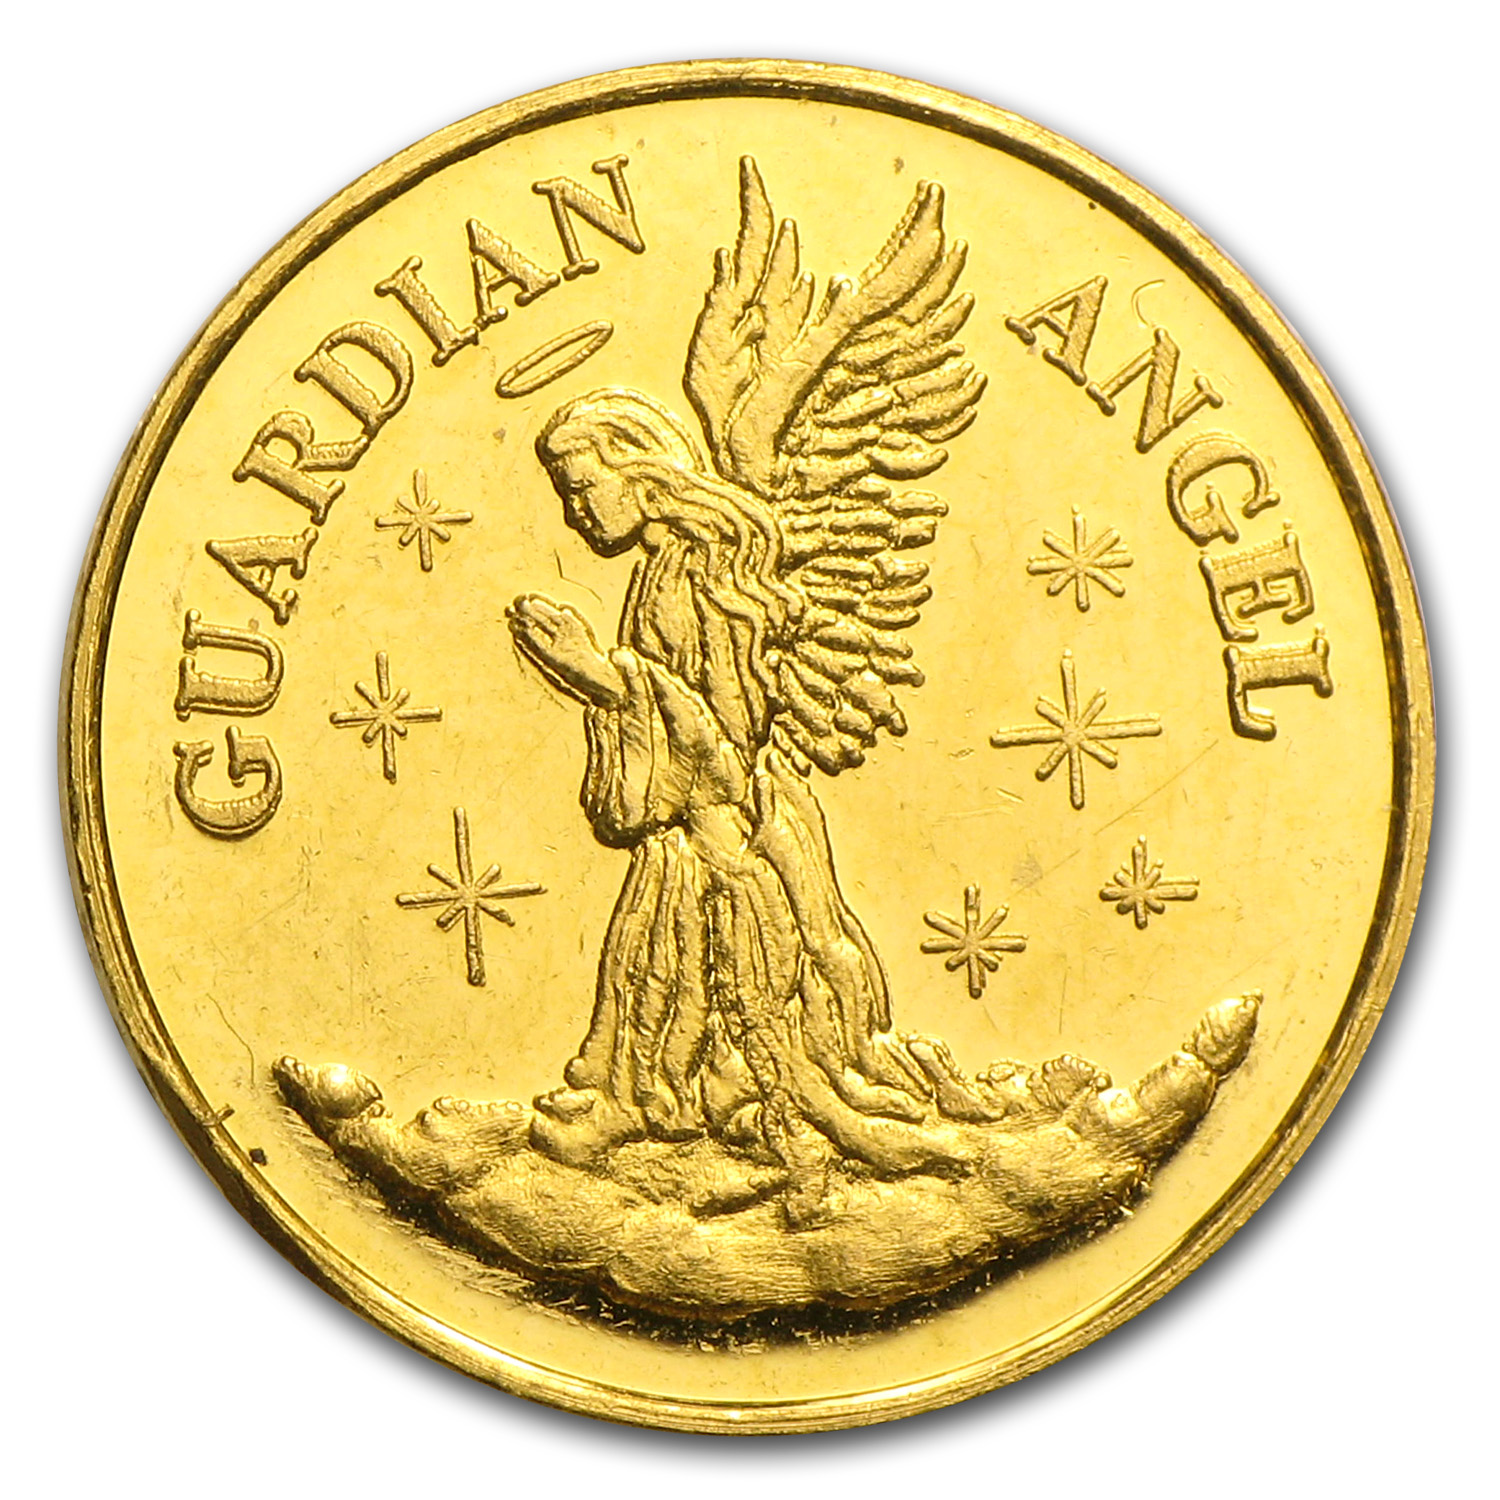 1/25 oz Gold Rounds - Secondary Market